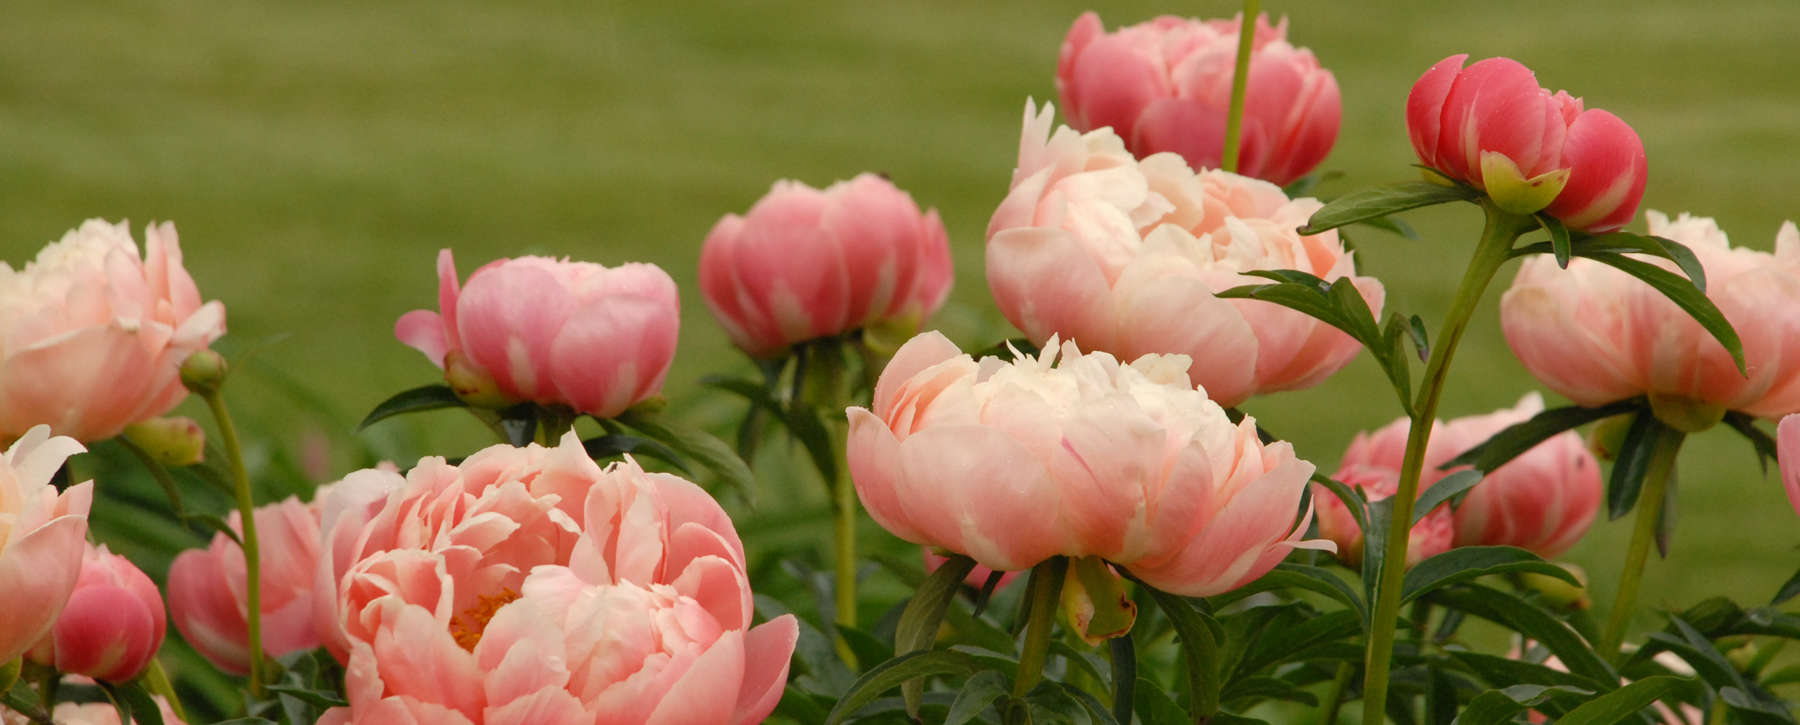 growing-peonies.jpg